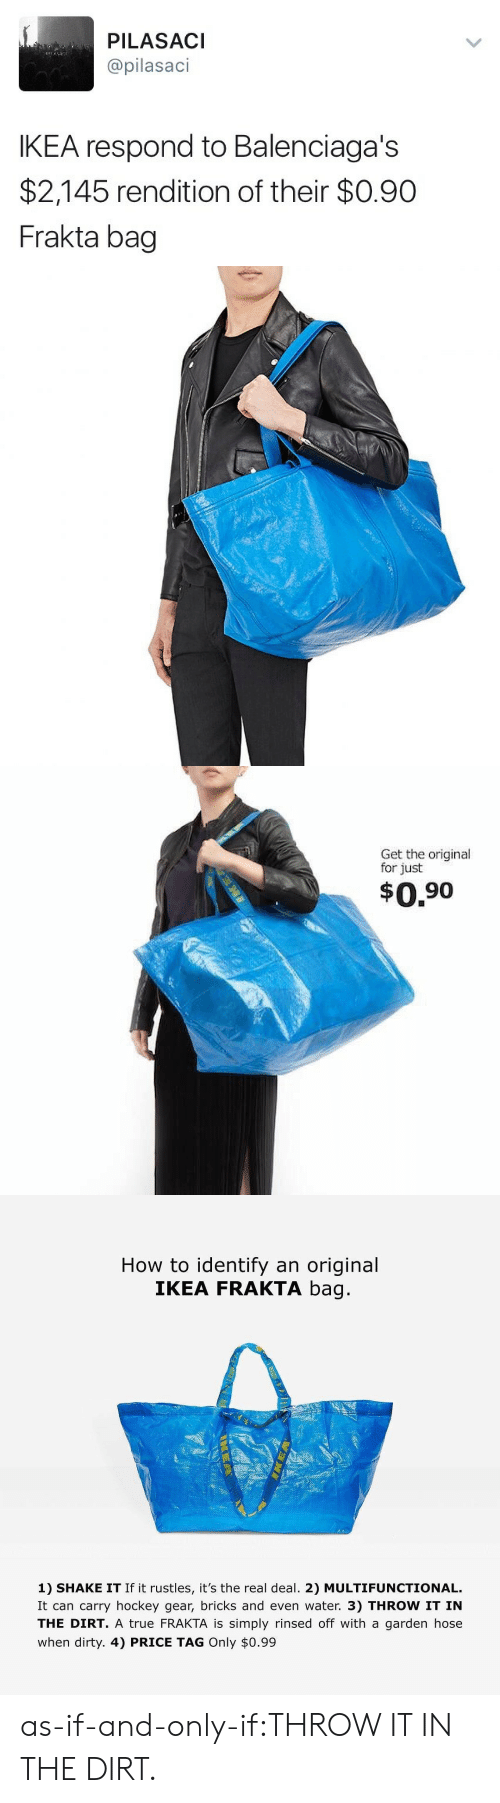 Hockey: PILASACI  @pilasaci  IKEA respond to Balenciaga's  $2,145 rendition of their $0.90  Frakta bag   Get the original  for just  $0.90   How to identify an original  IKEA FRAKTA bag  1) SHAKE IT If it rustles, it's the real deal. 2) MULTIFUNCTIONAL.  It can carry hockey gear, bricks and even water. 3) THROW IT IN  THE DIRT. A true FRAKTA is simply rinsed off with a garden hose  when dirty. 4) PRICE TAG Only $0.99 as-if-and-only-if:THROW IT IN THE DIRT.